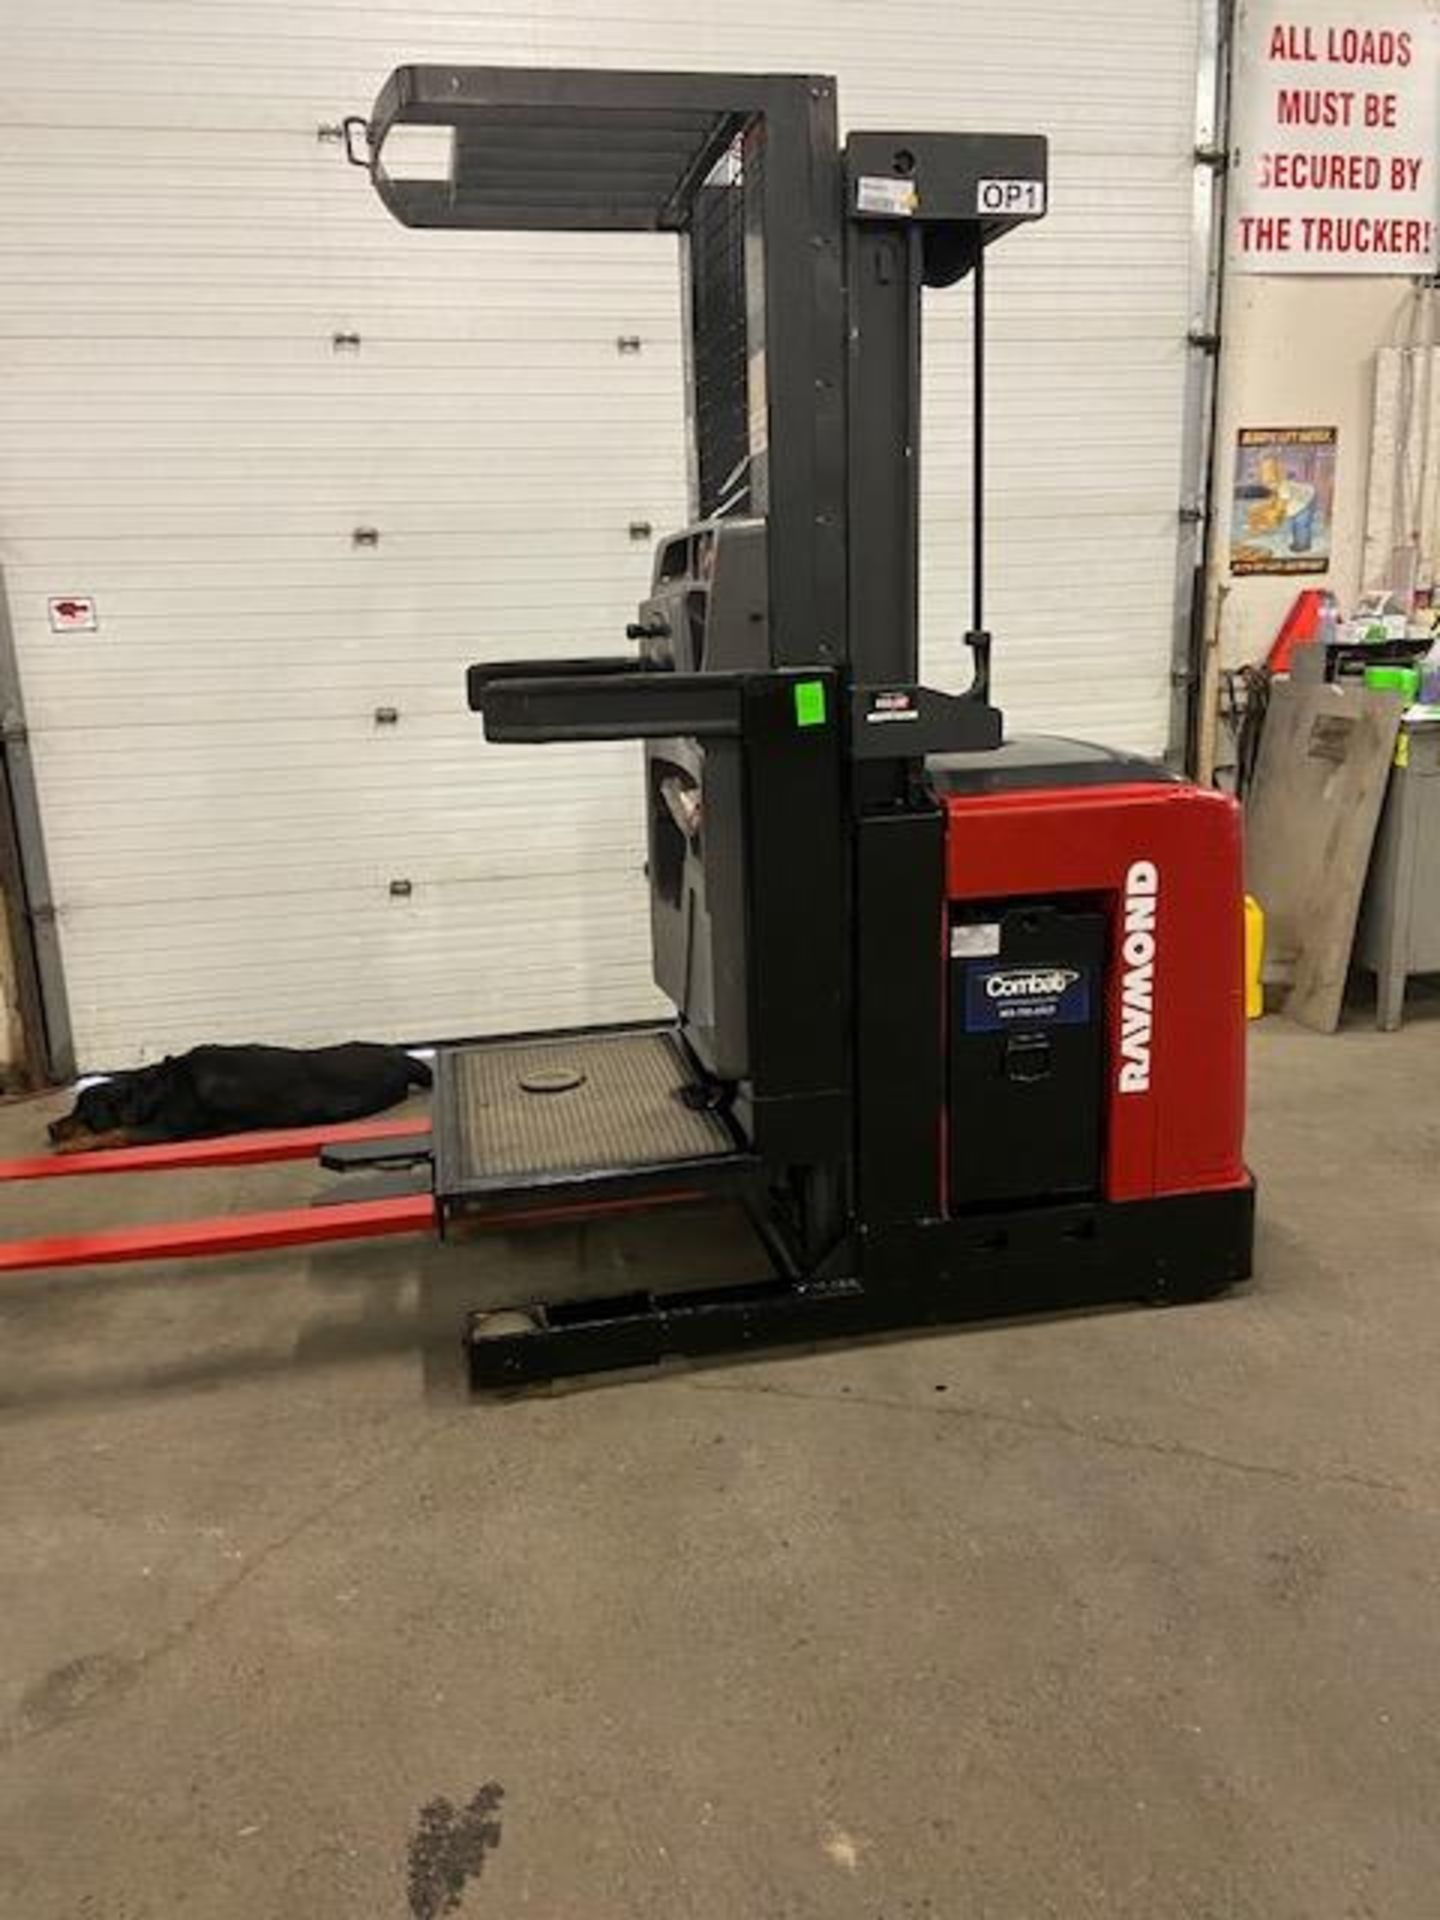 FREE CUSTOMS - 2008 Raymond Order Picker Electric Powered Pallet Cart Lifter with low hours - Image 2 of 3